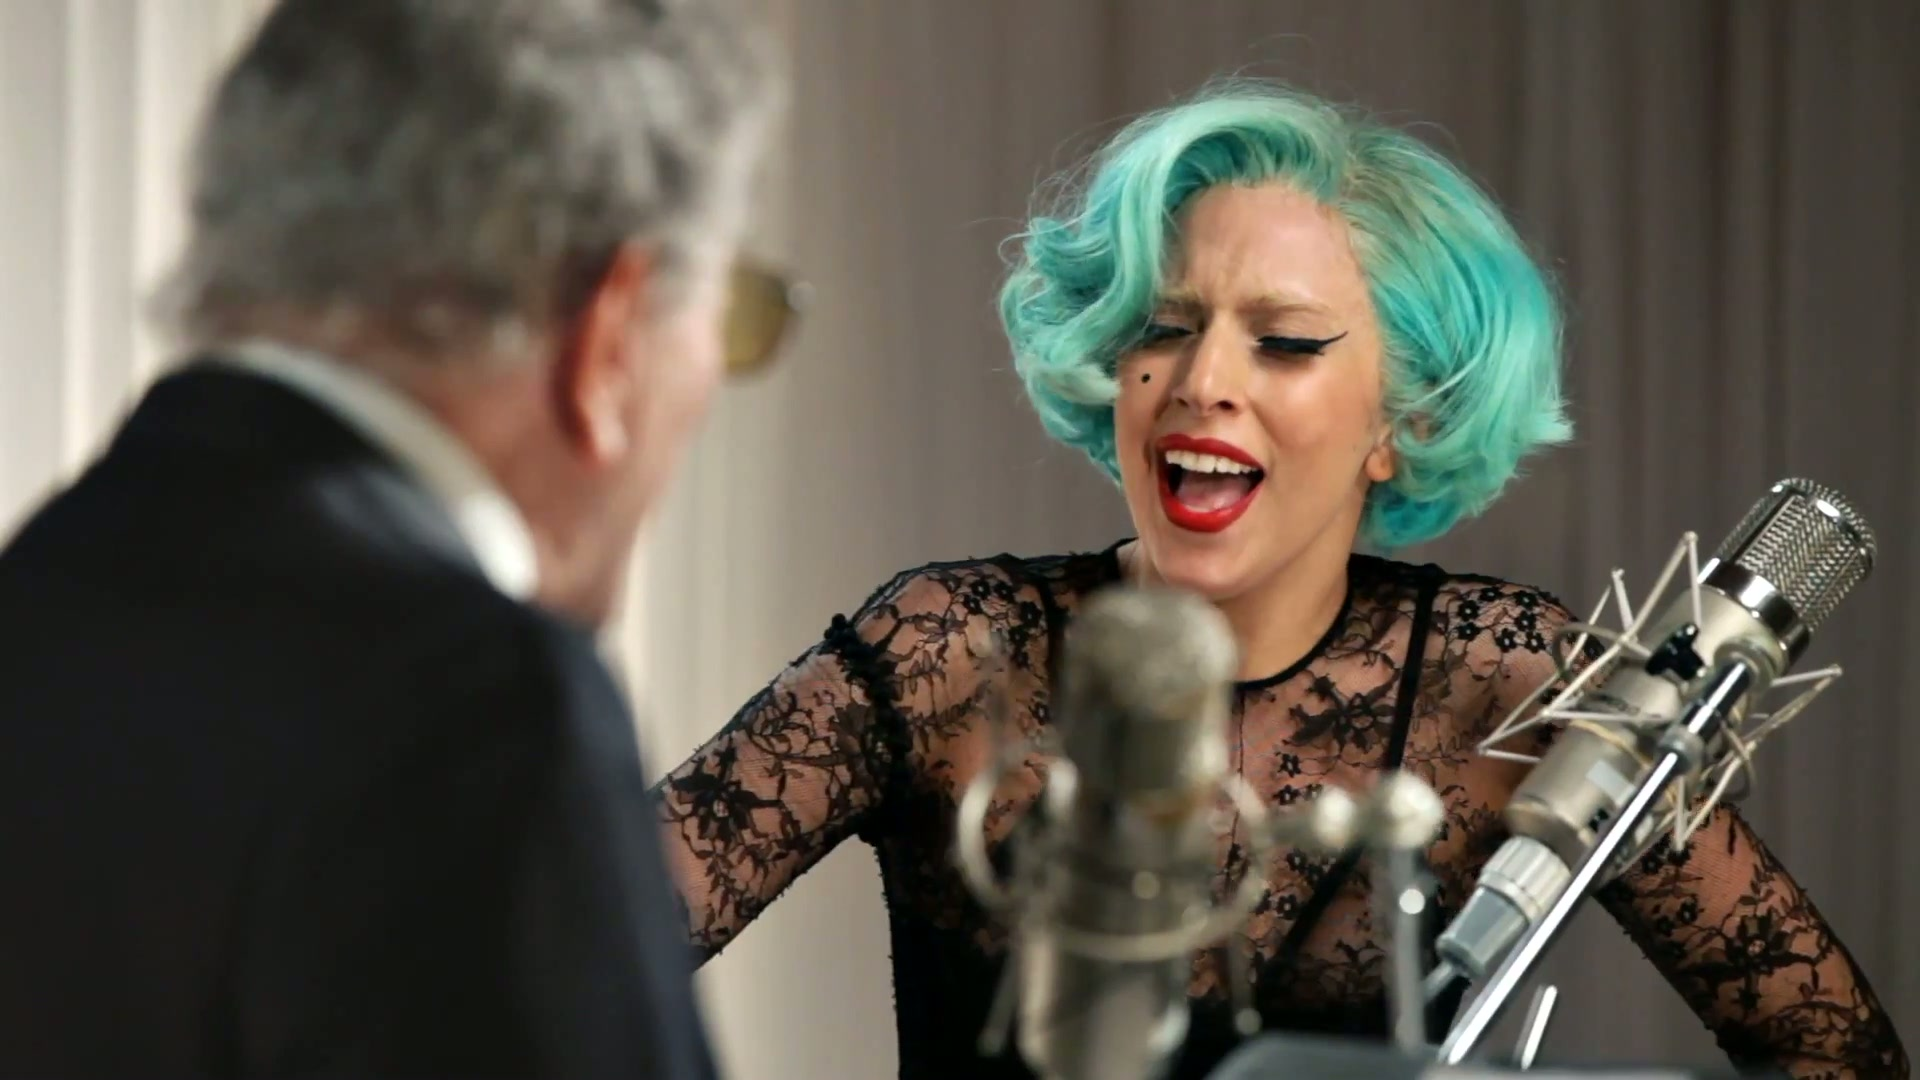 Lady Gaga – Anything Goes (feat. Tony Bennett)